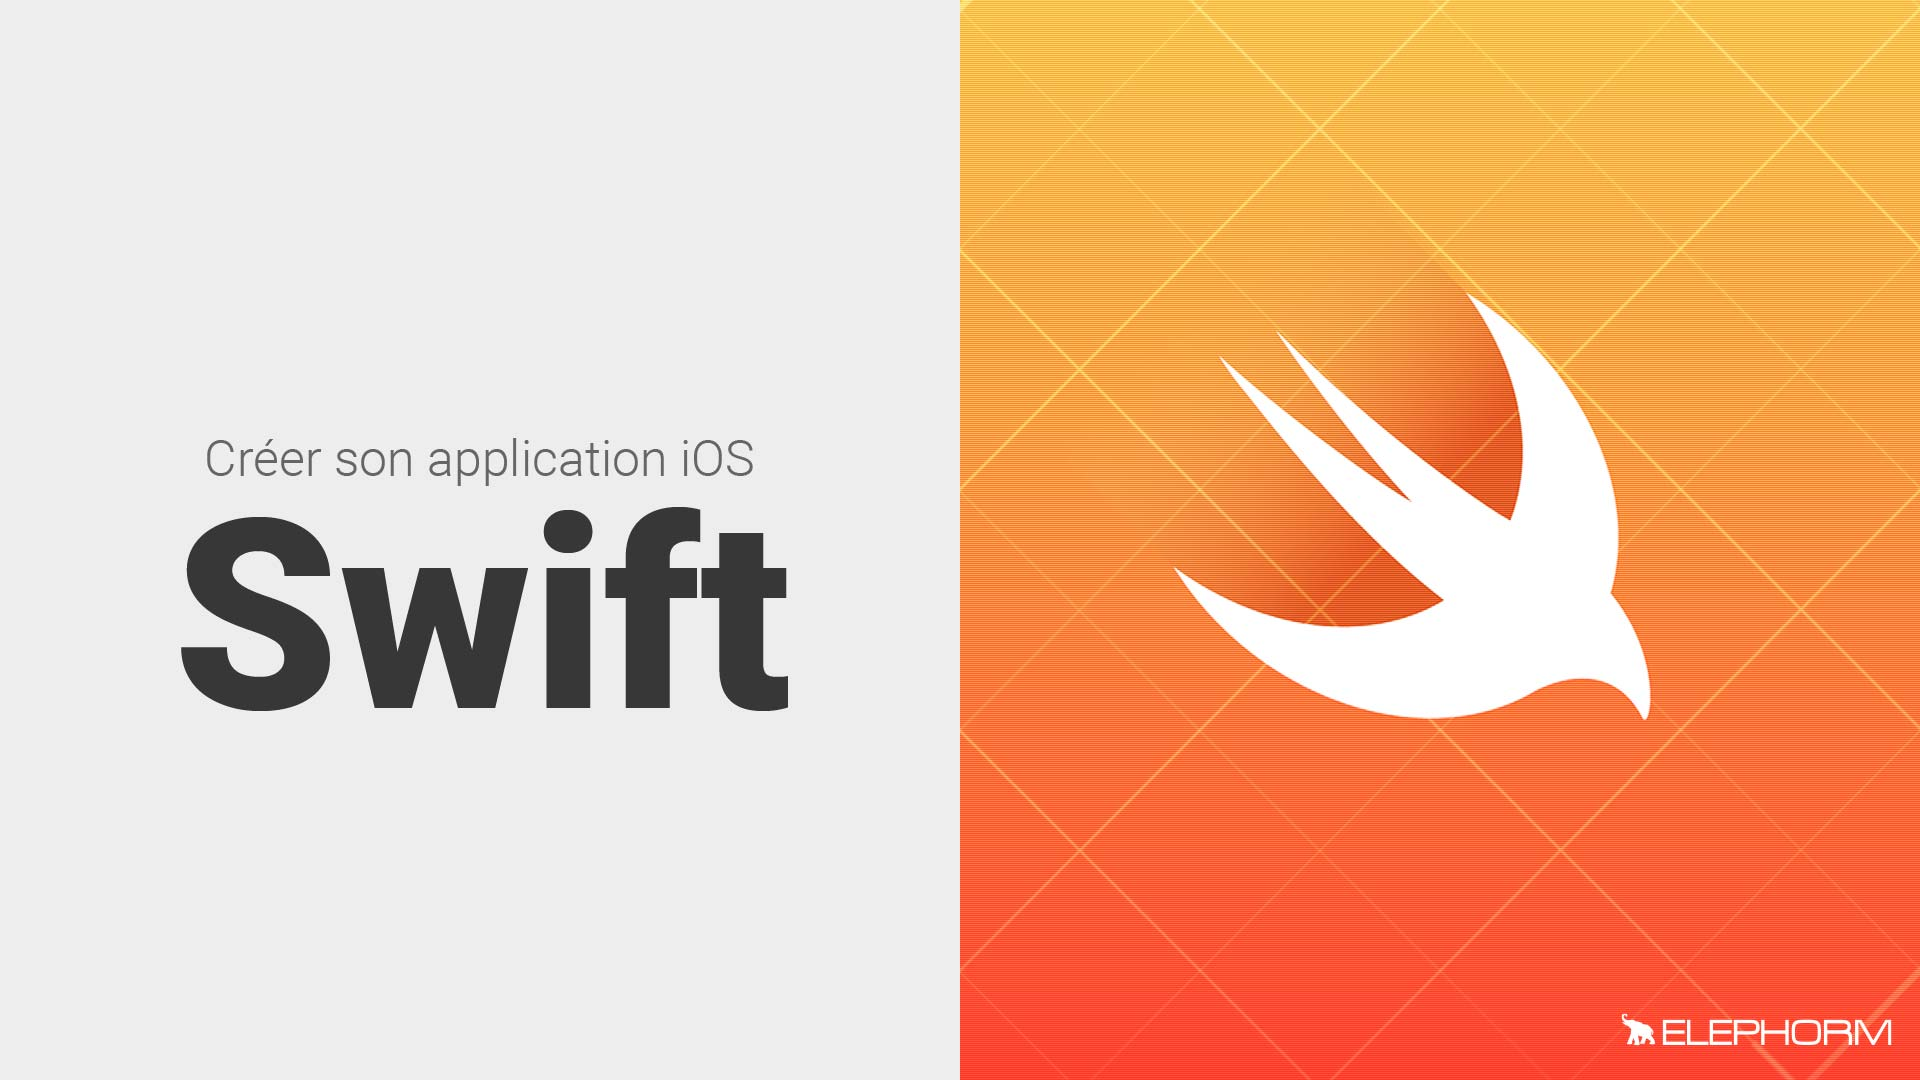 Créer son application iOS avec Swift